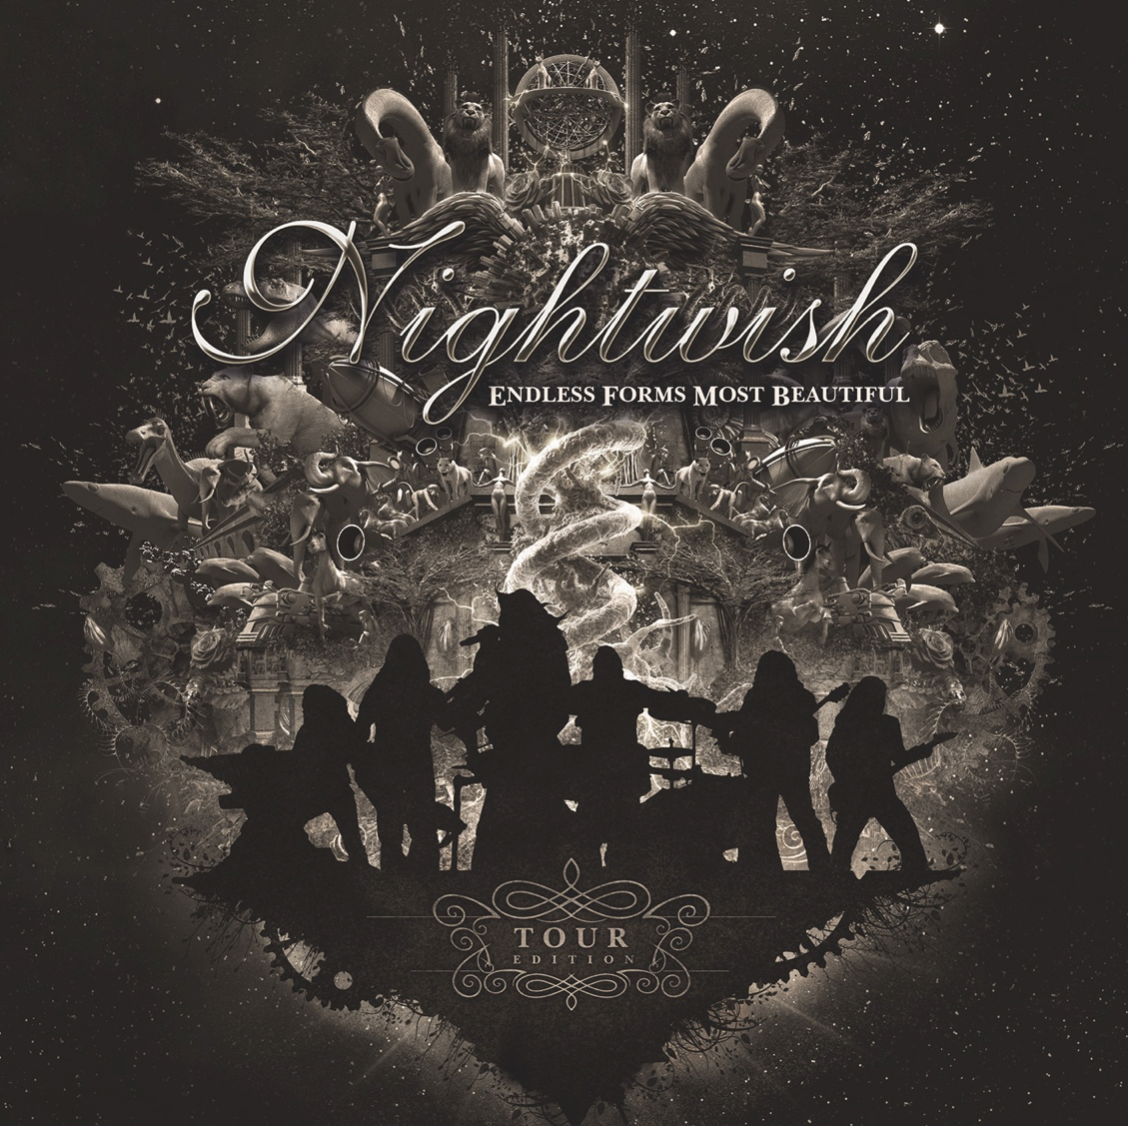 Nightwish - Endless Forms Most Beautiful, tour edition